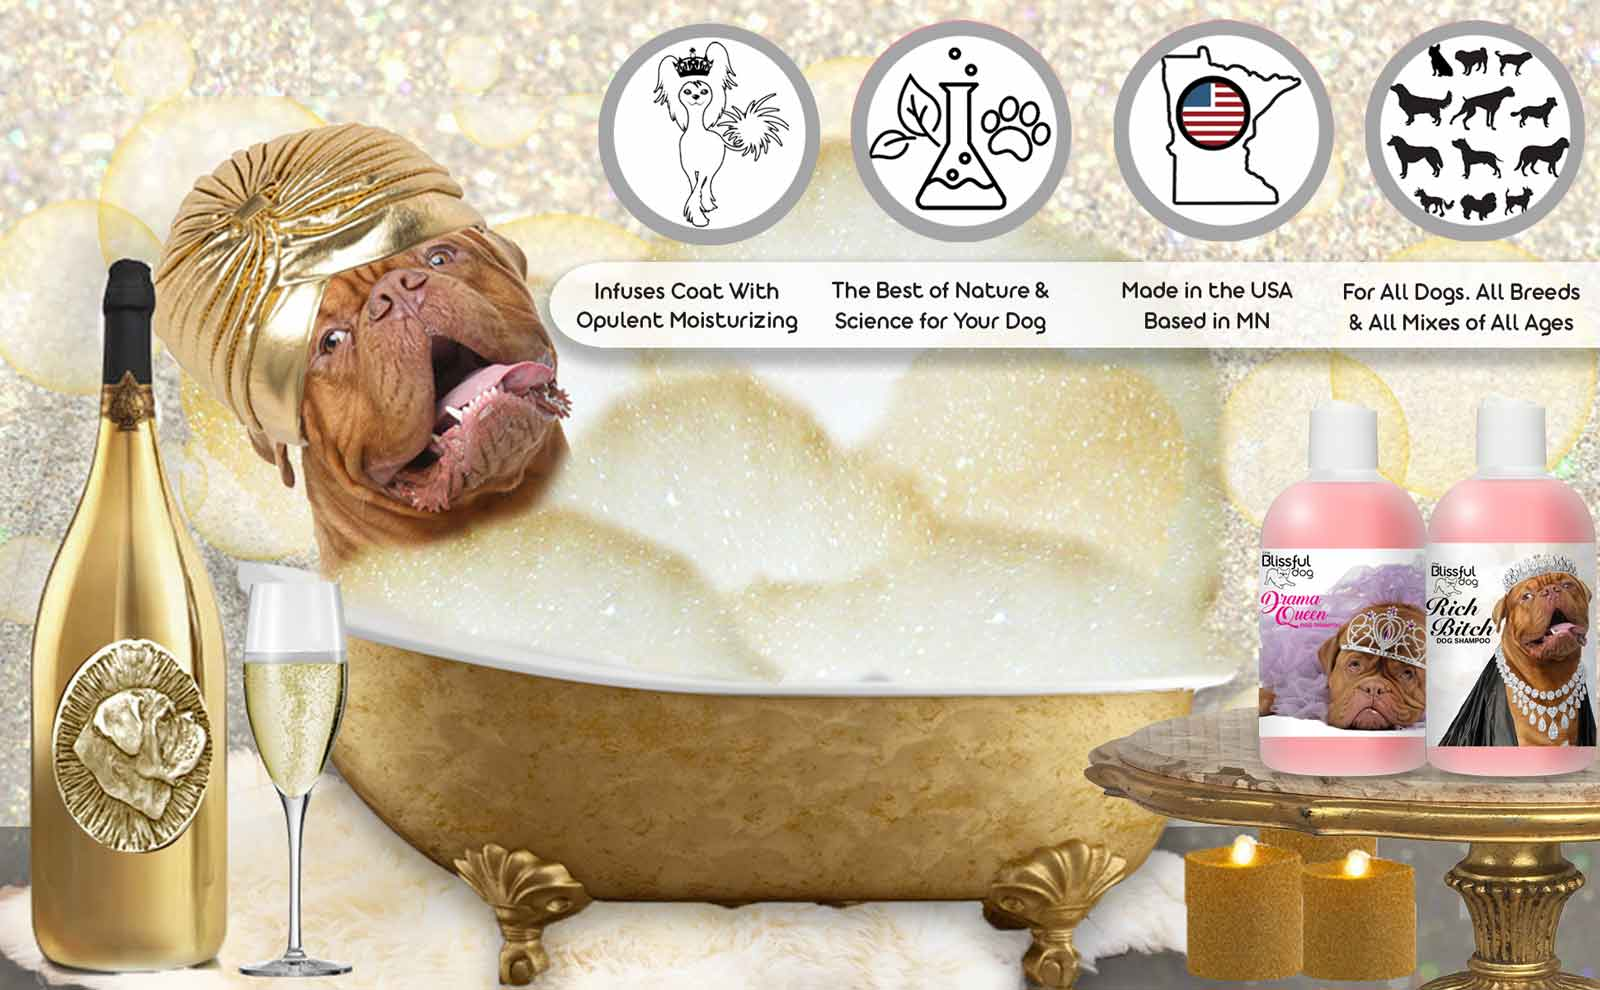 Dogue de Bordeaux bathtub